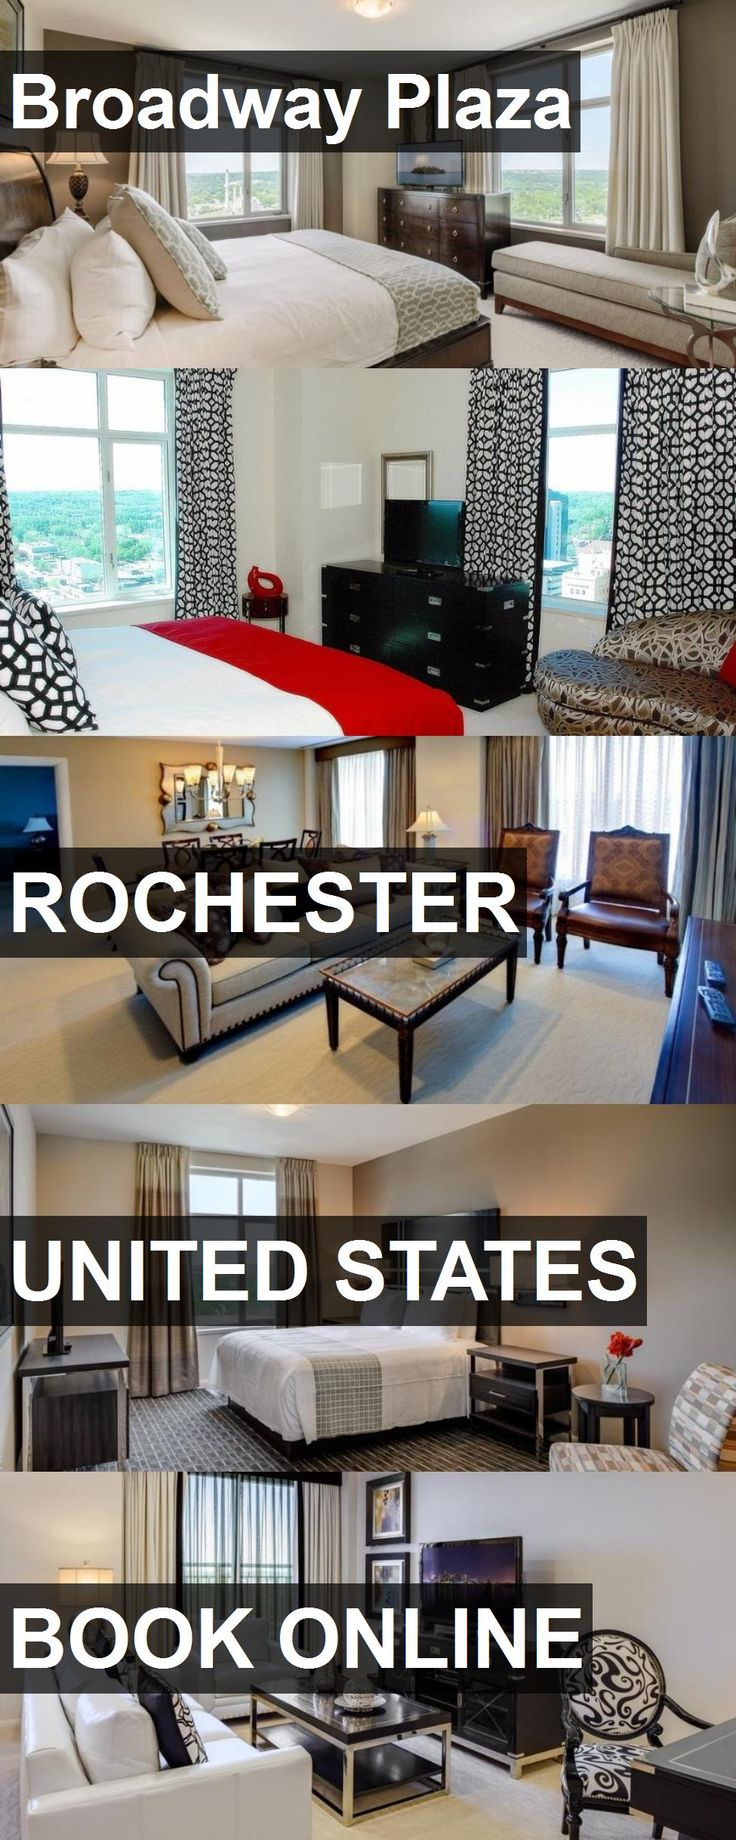 Hotel Broadway Plaza in Rochester, United States. For more information, photos, reviews and best prices please follow the link. #UnitedStates #Rochester #travel #vacation #hotel